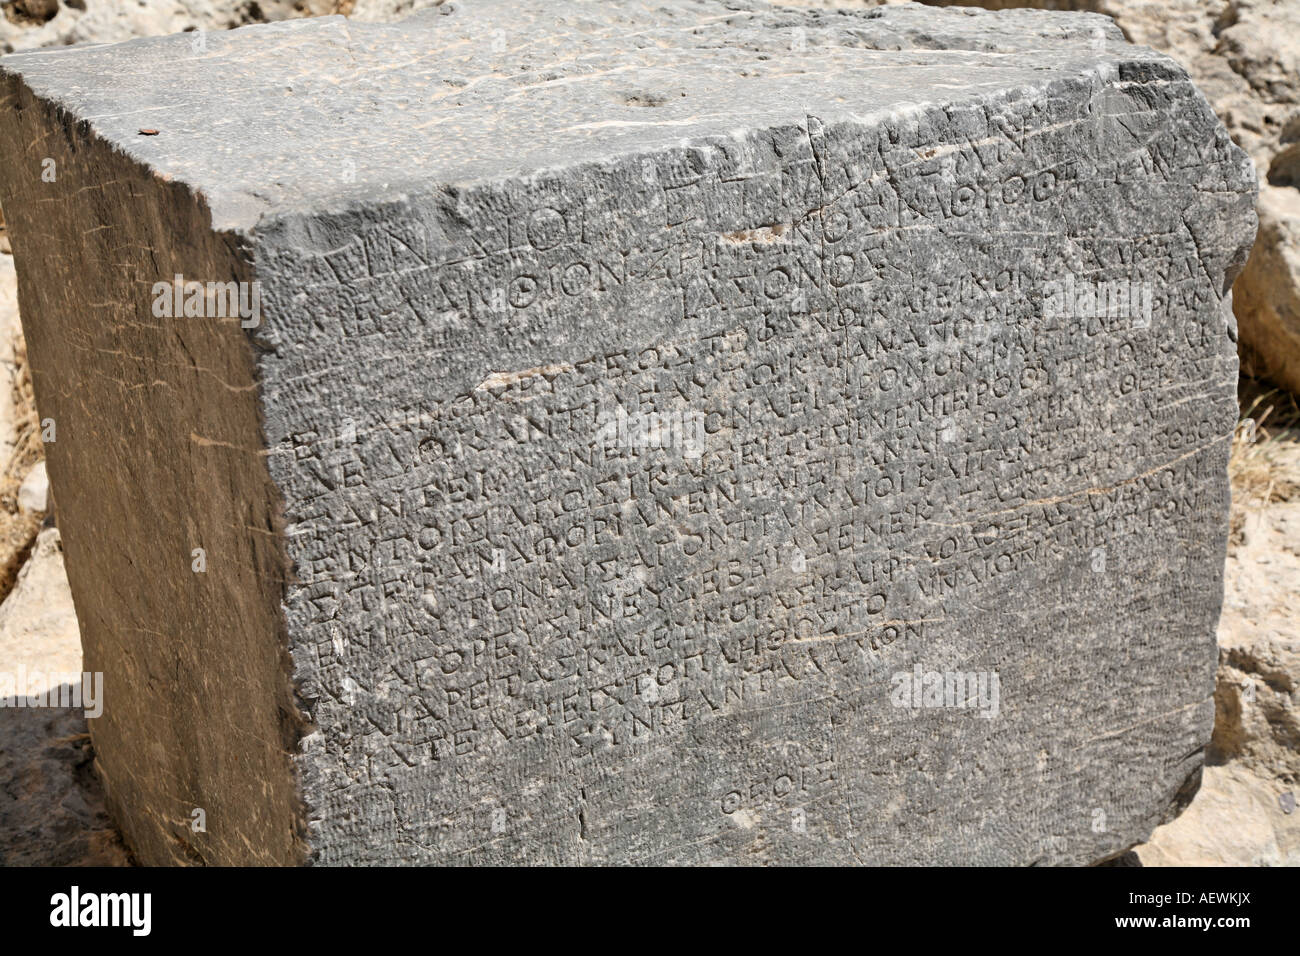 Greek Written Tablet The Acropolis Lindos Rhodes Greek Islands Greece Hellas - Stock Image